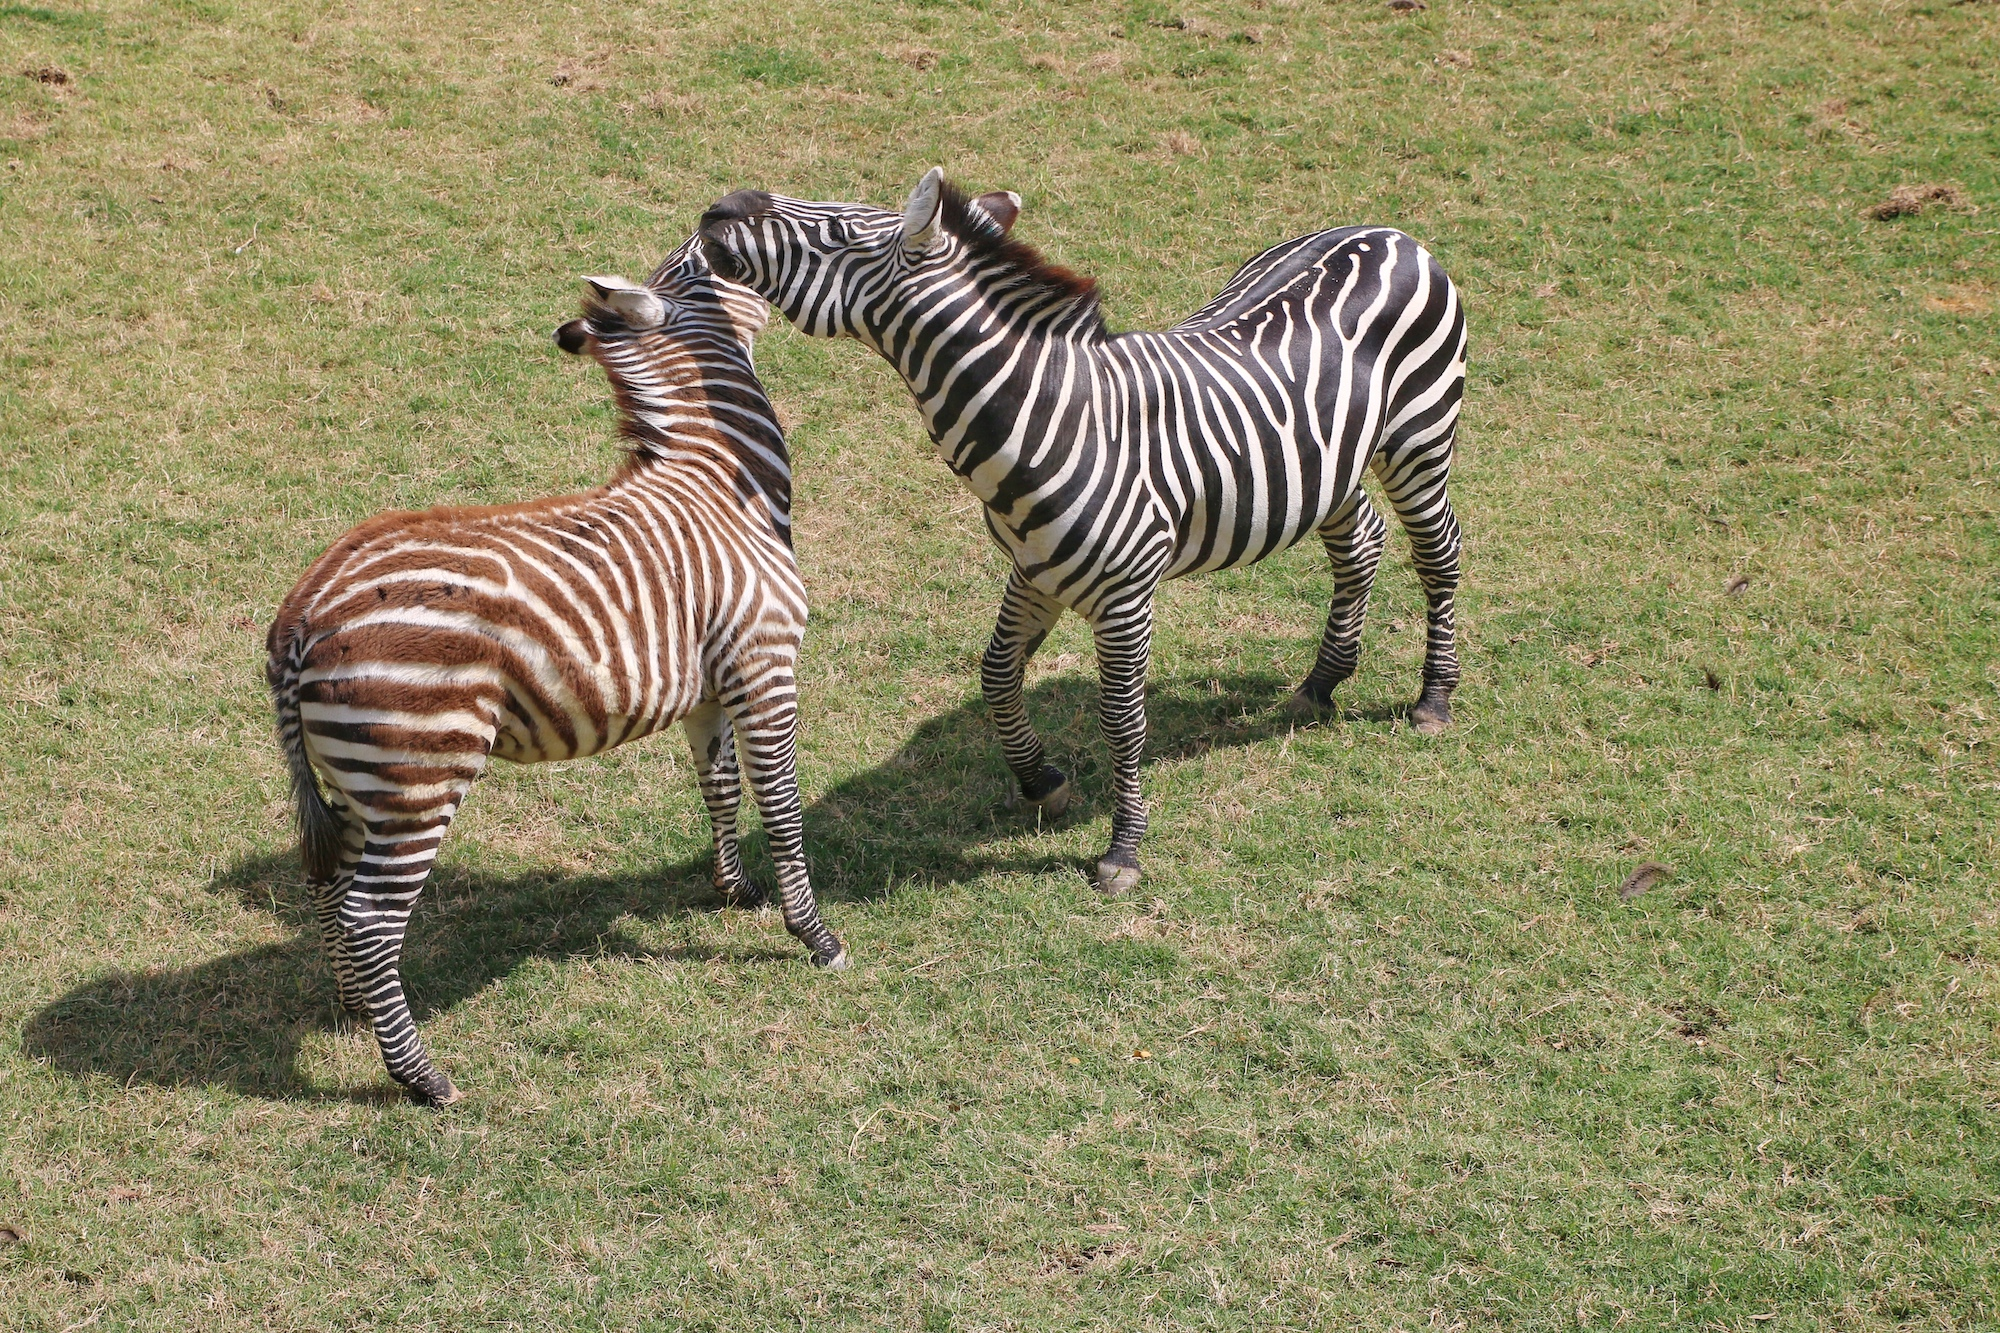 zebras playing at Fort Worth zoo